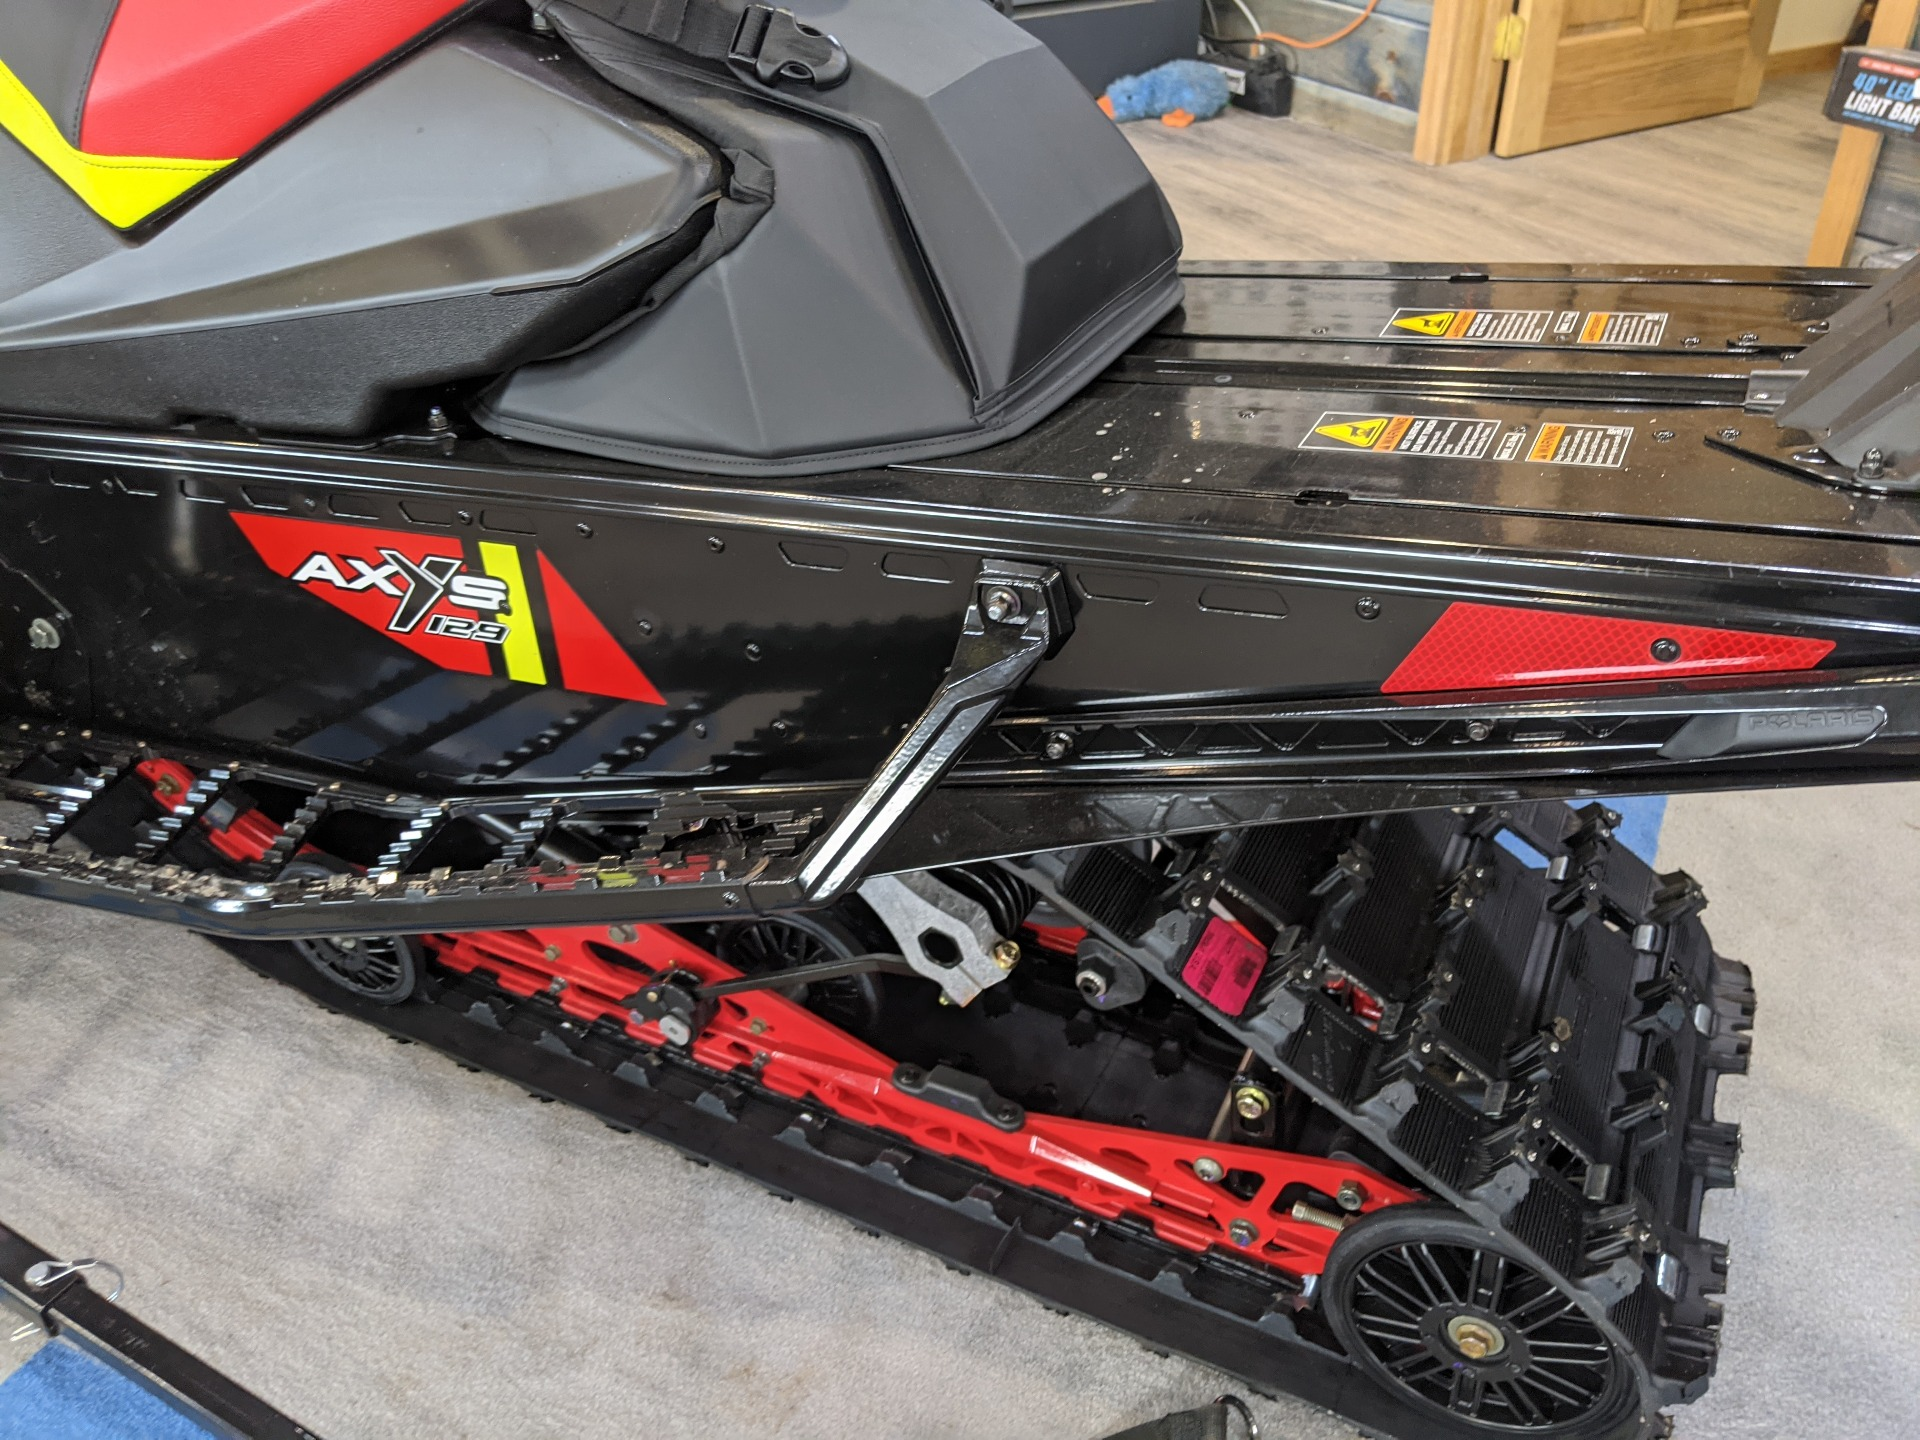 2021 Polaris 850 Indy XC 129 Factory Choice in Malone, New York - Photo 4